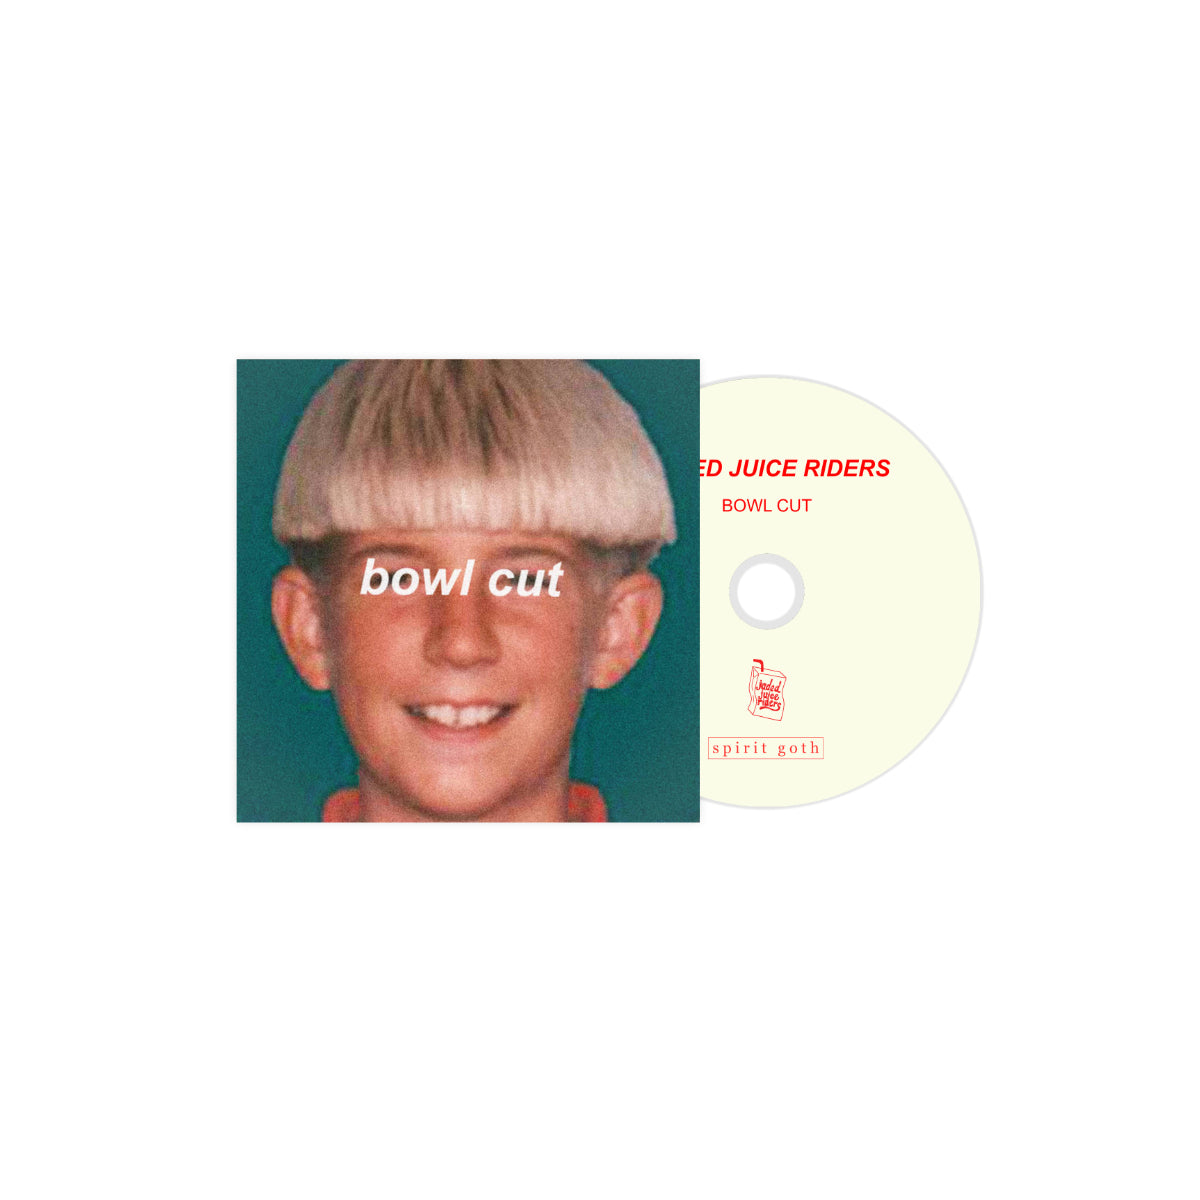 SG18: Jaded Juice Riders - Bowl Cut